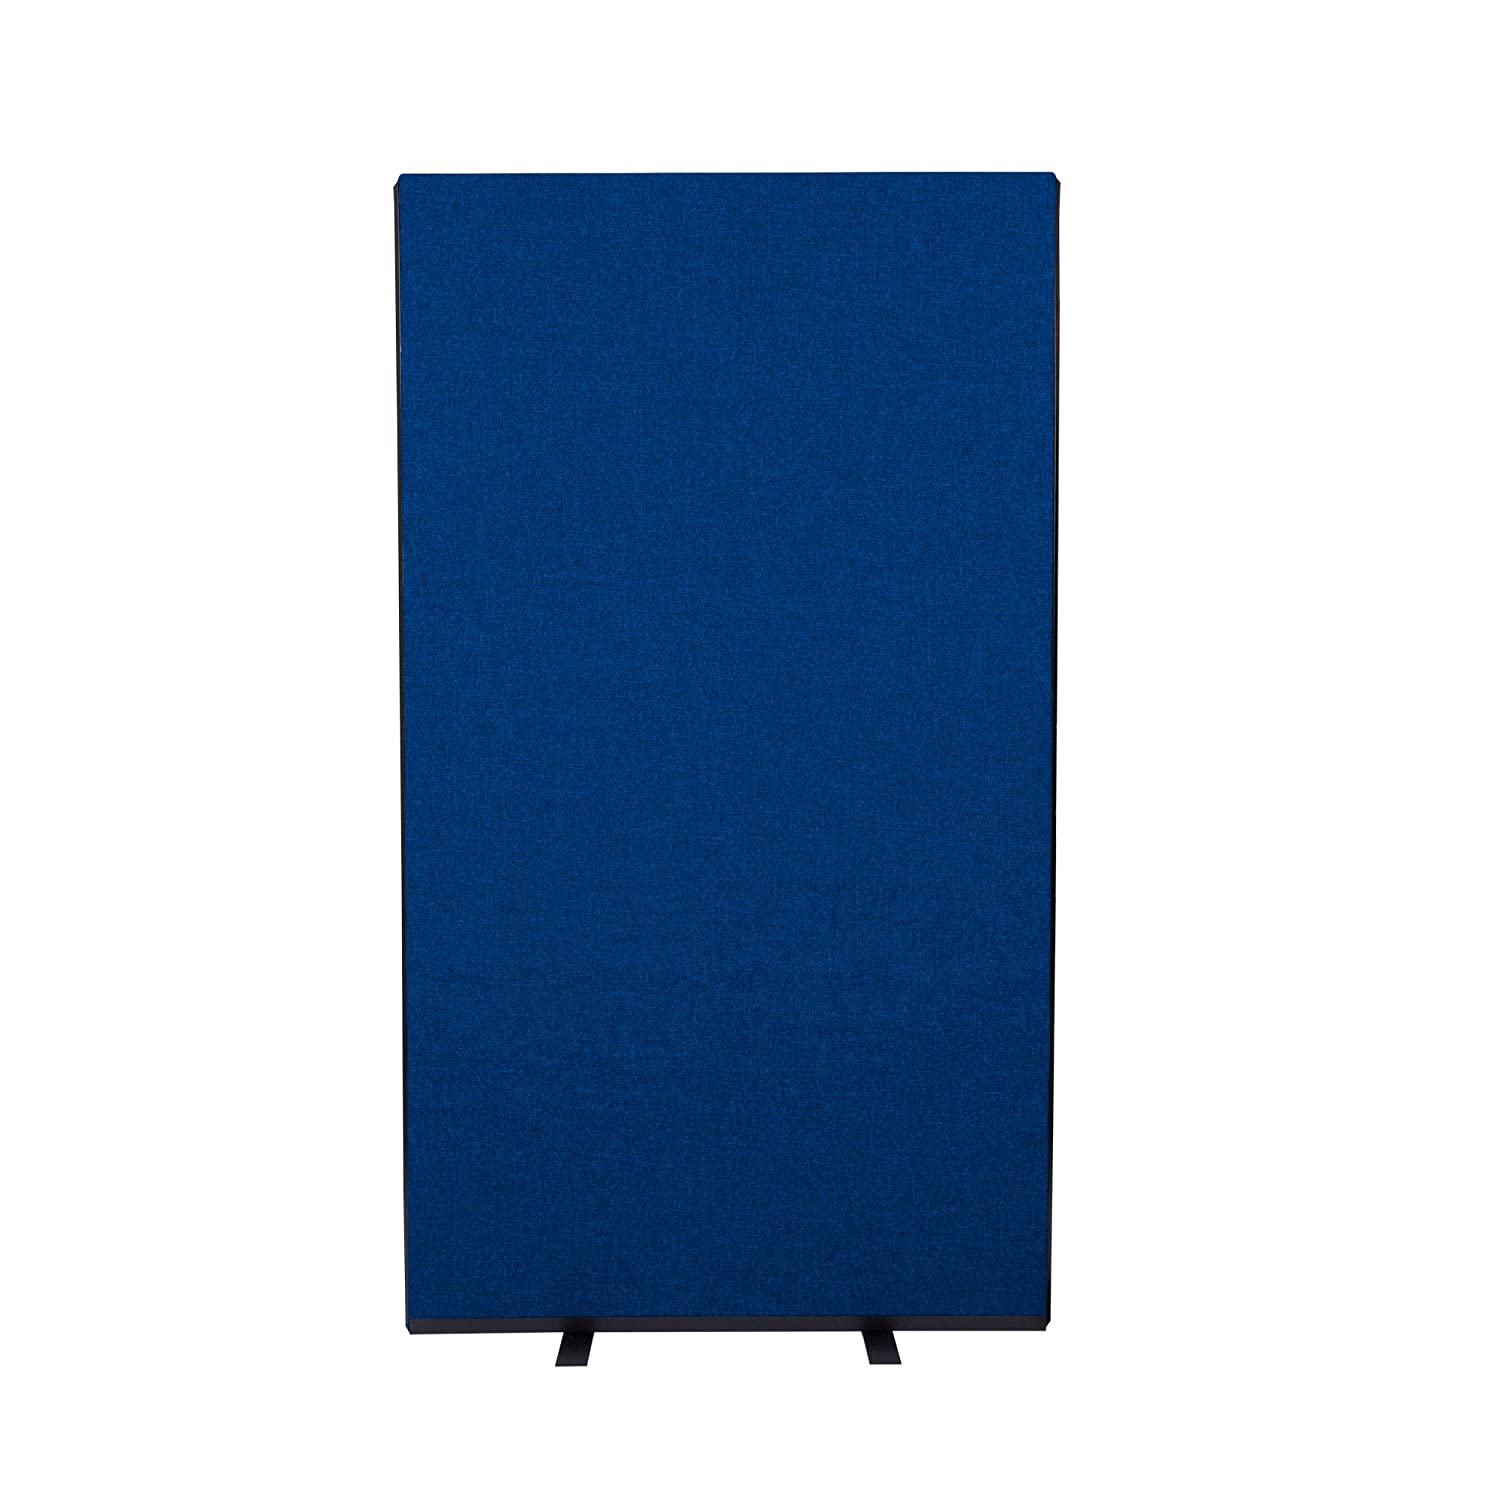 Navy blueee 1000mm W x 1800mm H Panelwarehouse 1000mm W x 1500mm H Free Standing Office Partition Screens Room Divider Navy blueee Nyloop Fabric